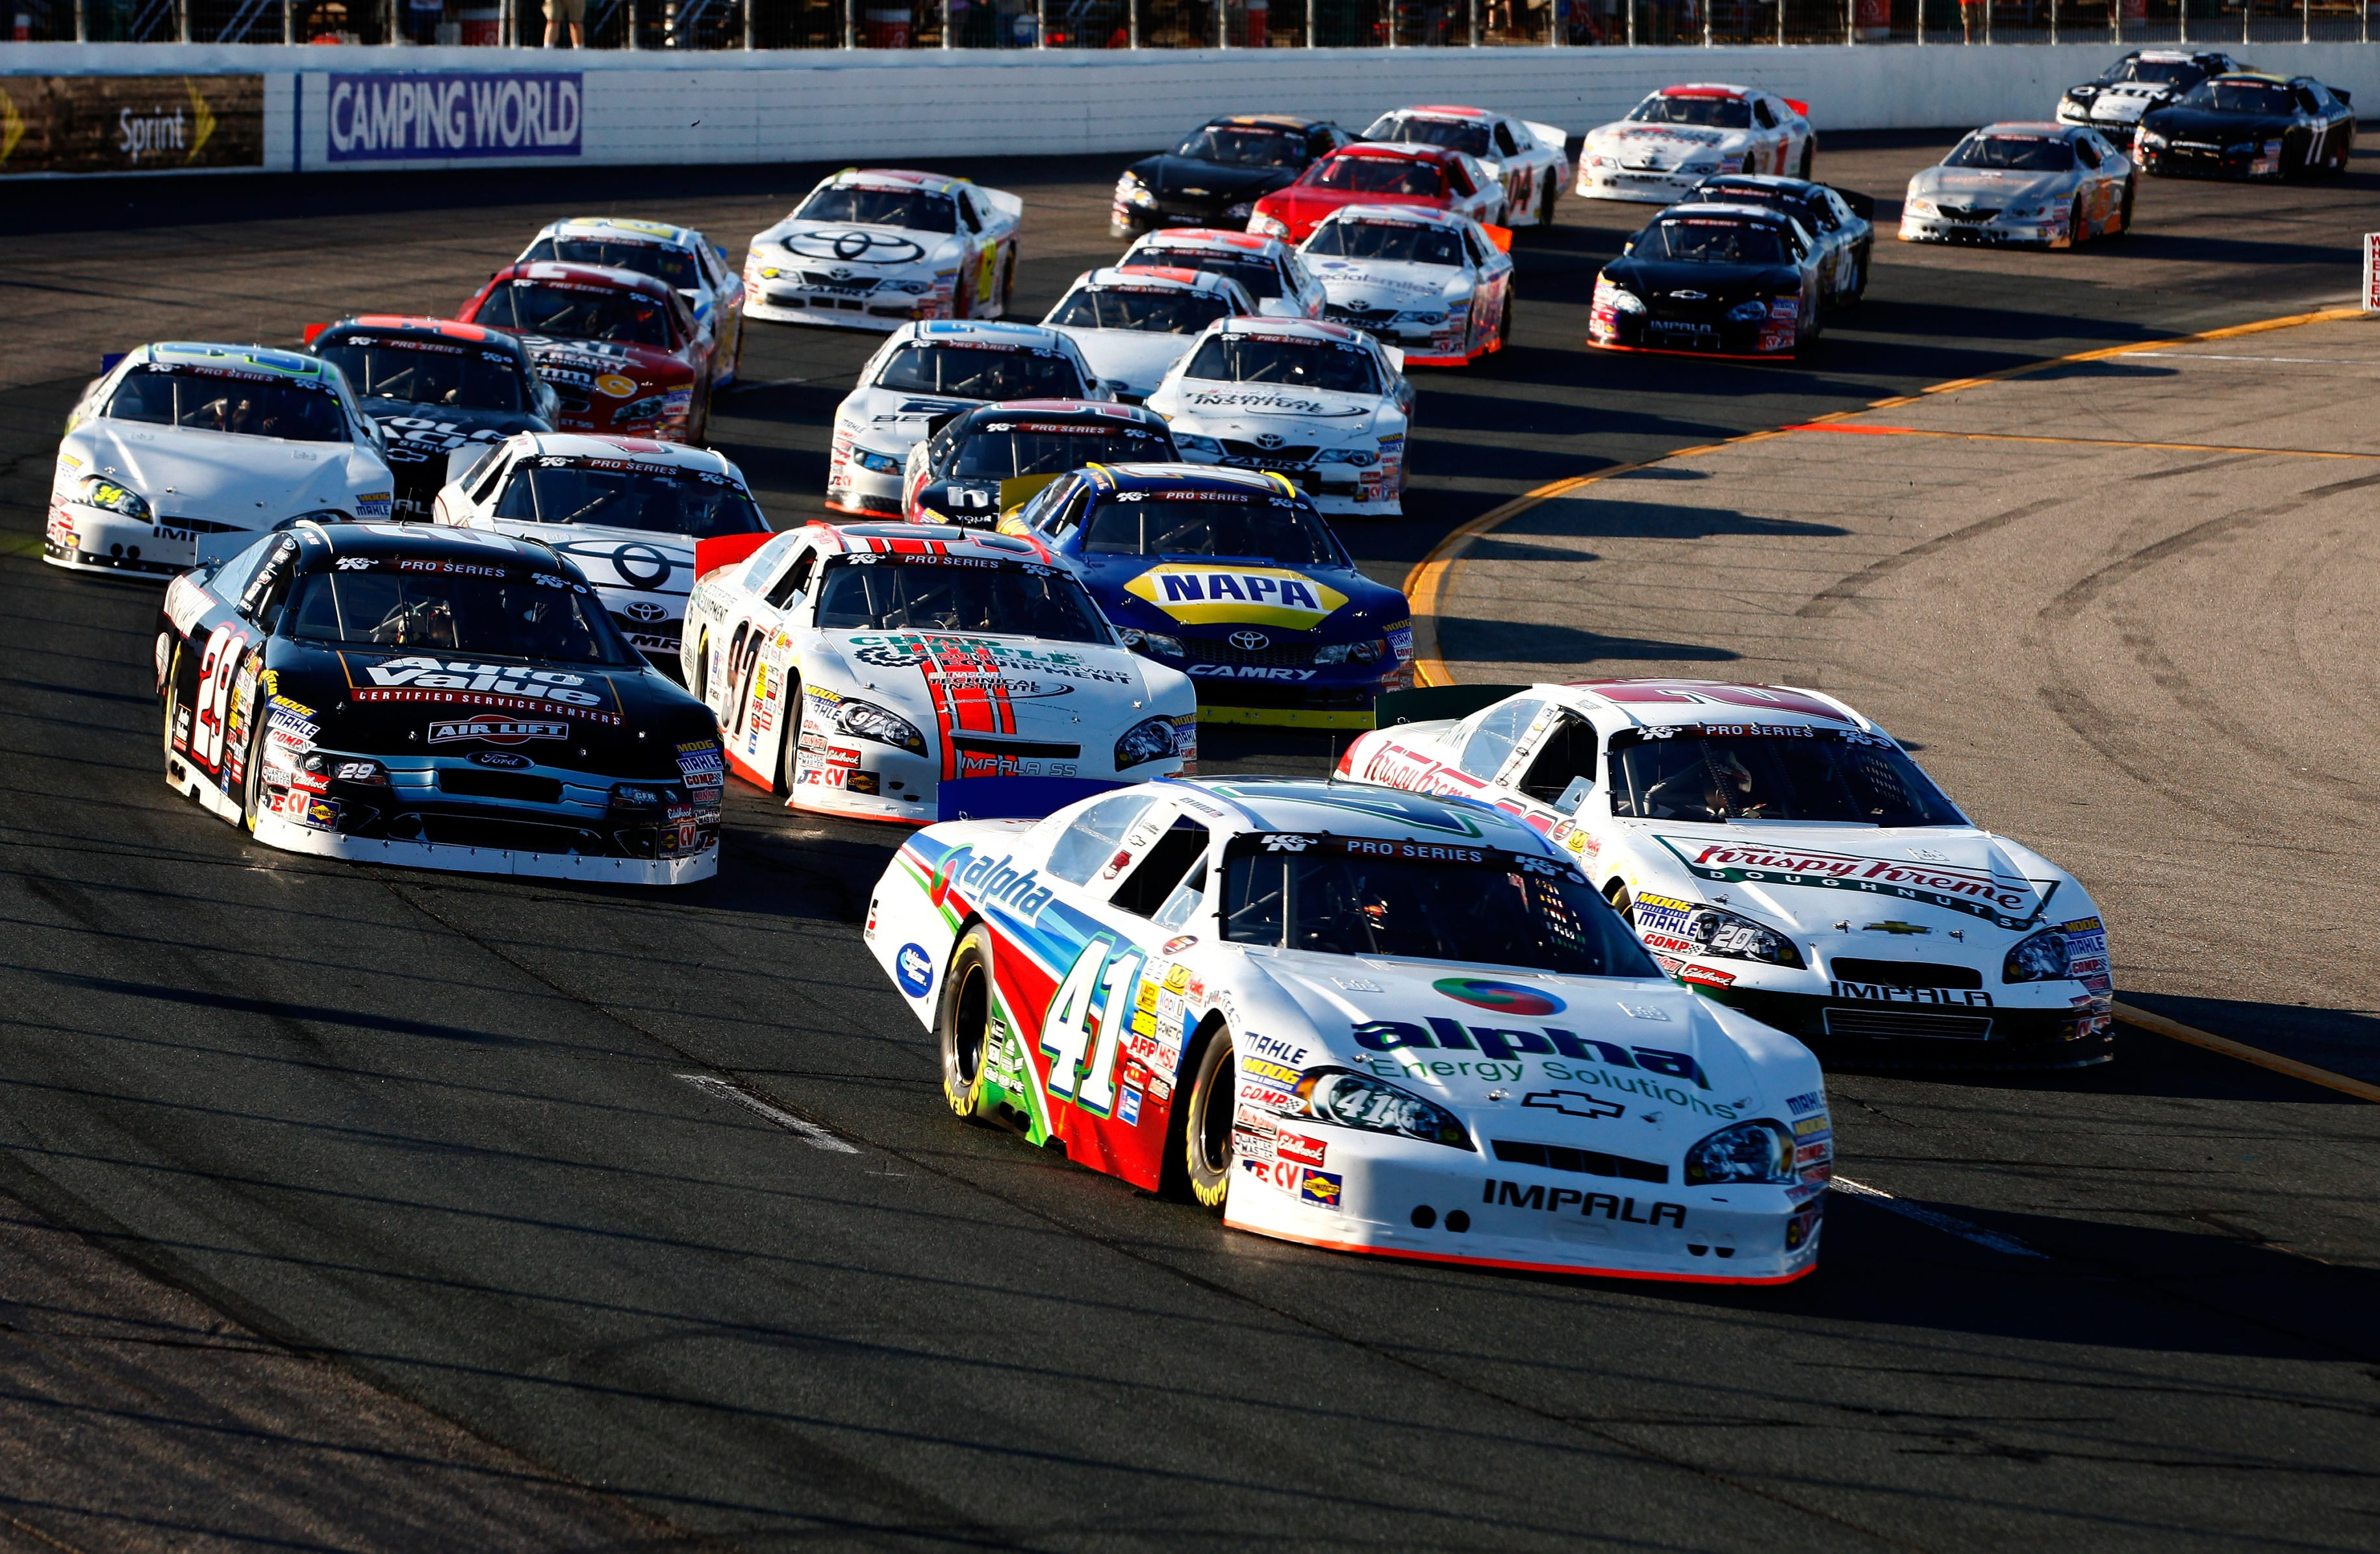 NASCAR K&N Pro Series at New Hampshire Motor Speedway